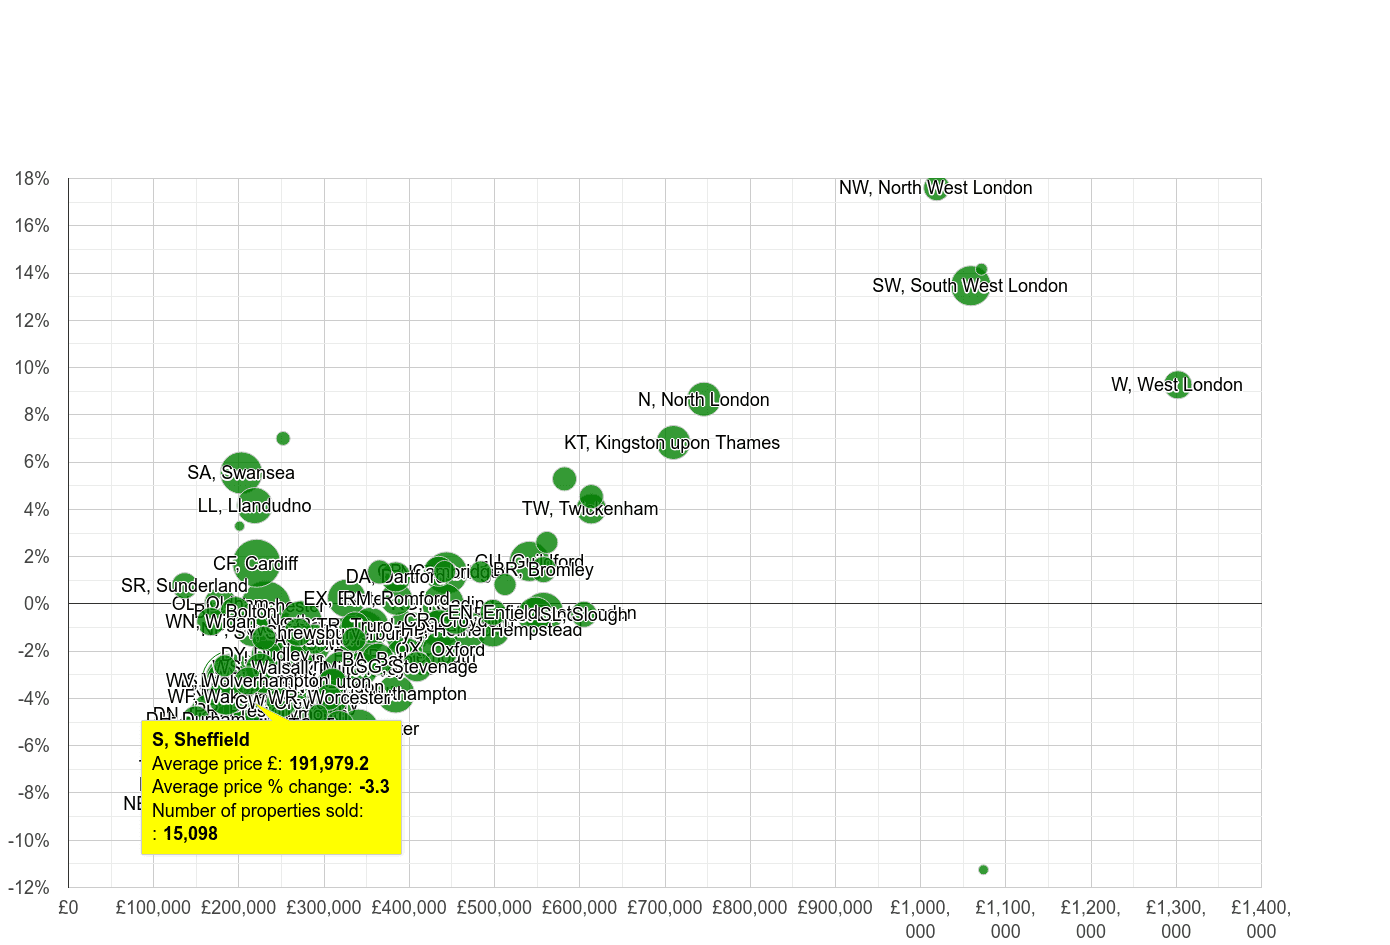 Sheffield house prices compared to other areas